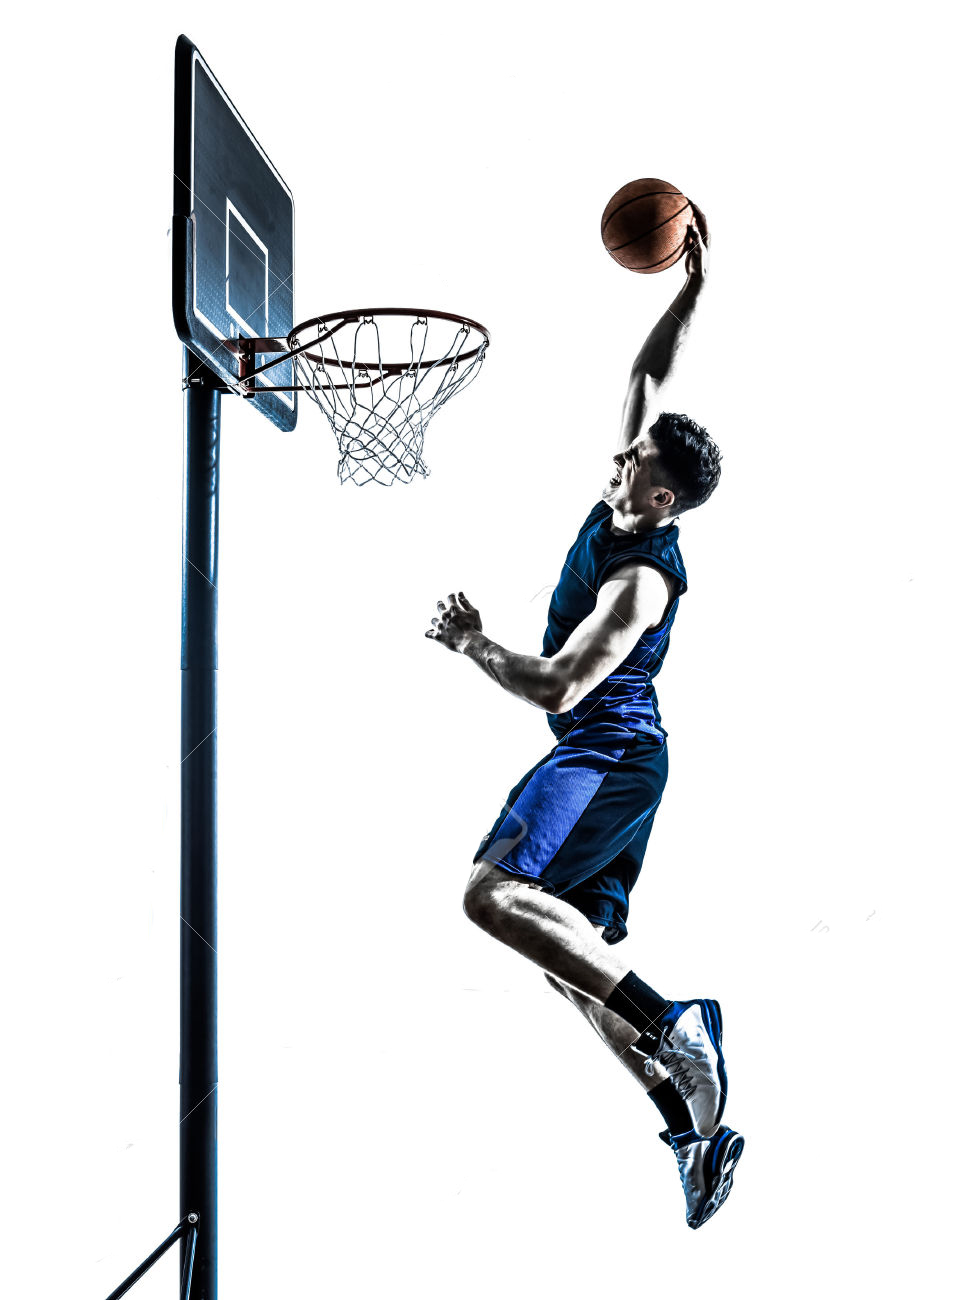 974x1300 38189634 One Man Basketball Player Jumping Dunking In Silhouette